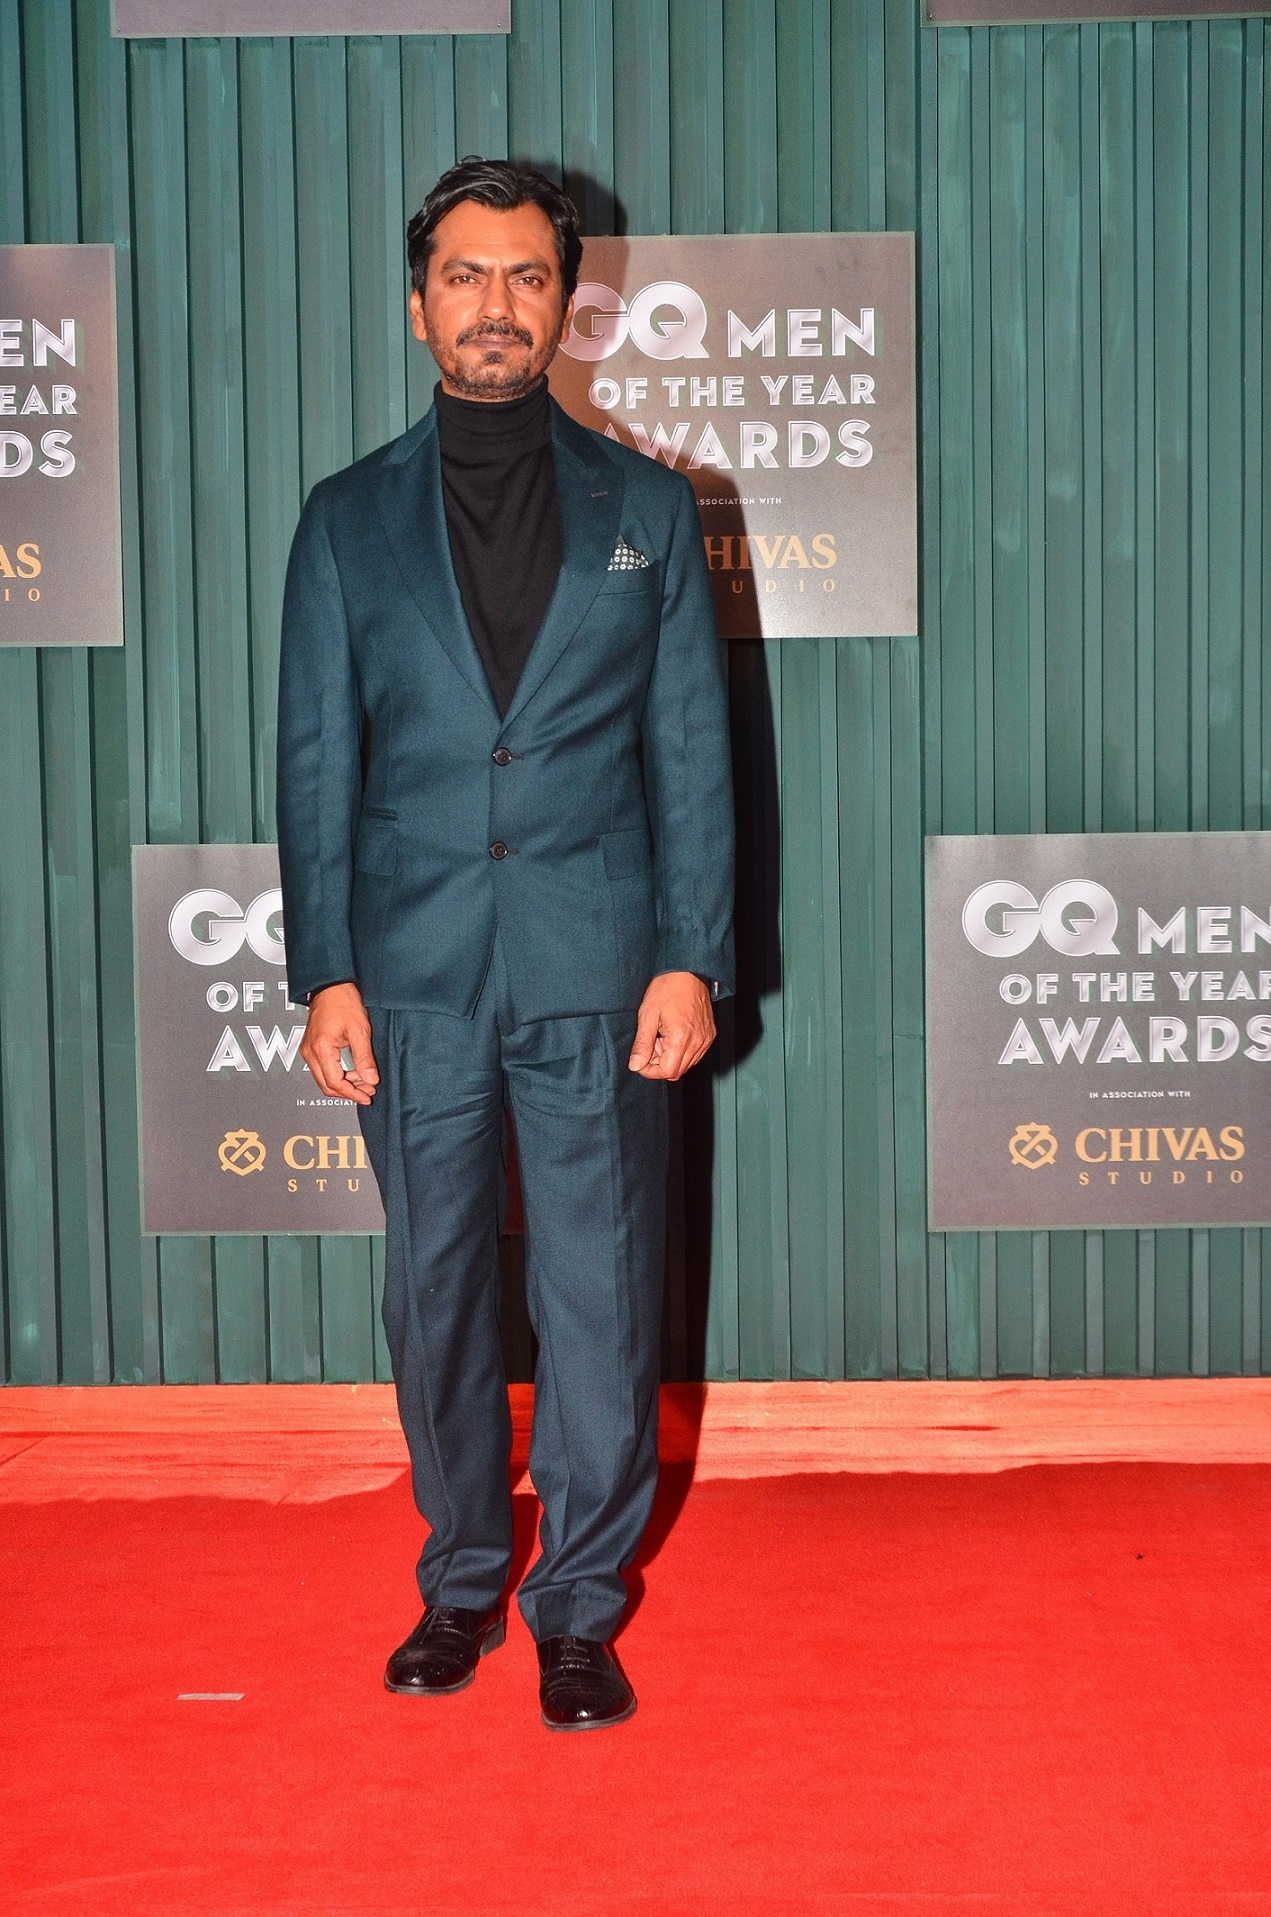 Winner - Actor of the Year, Nawazuddin Siddiqui at the GQ Men of The Year Awards 2018